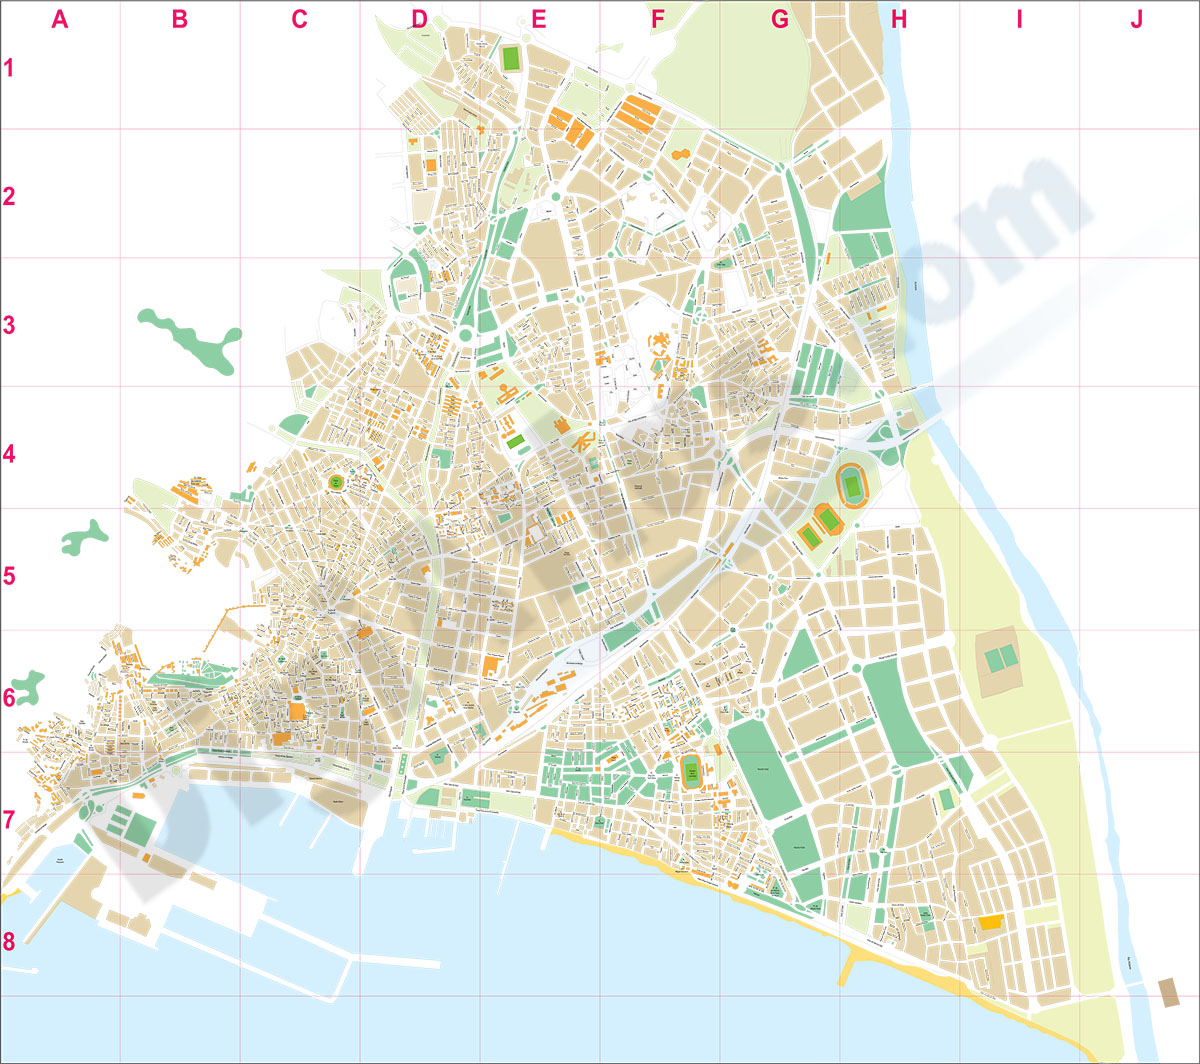 Almeria city map